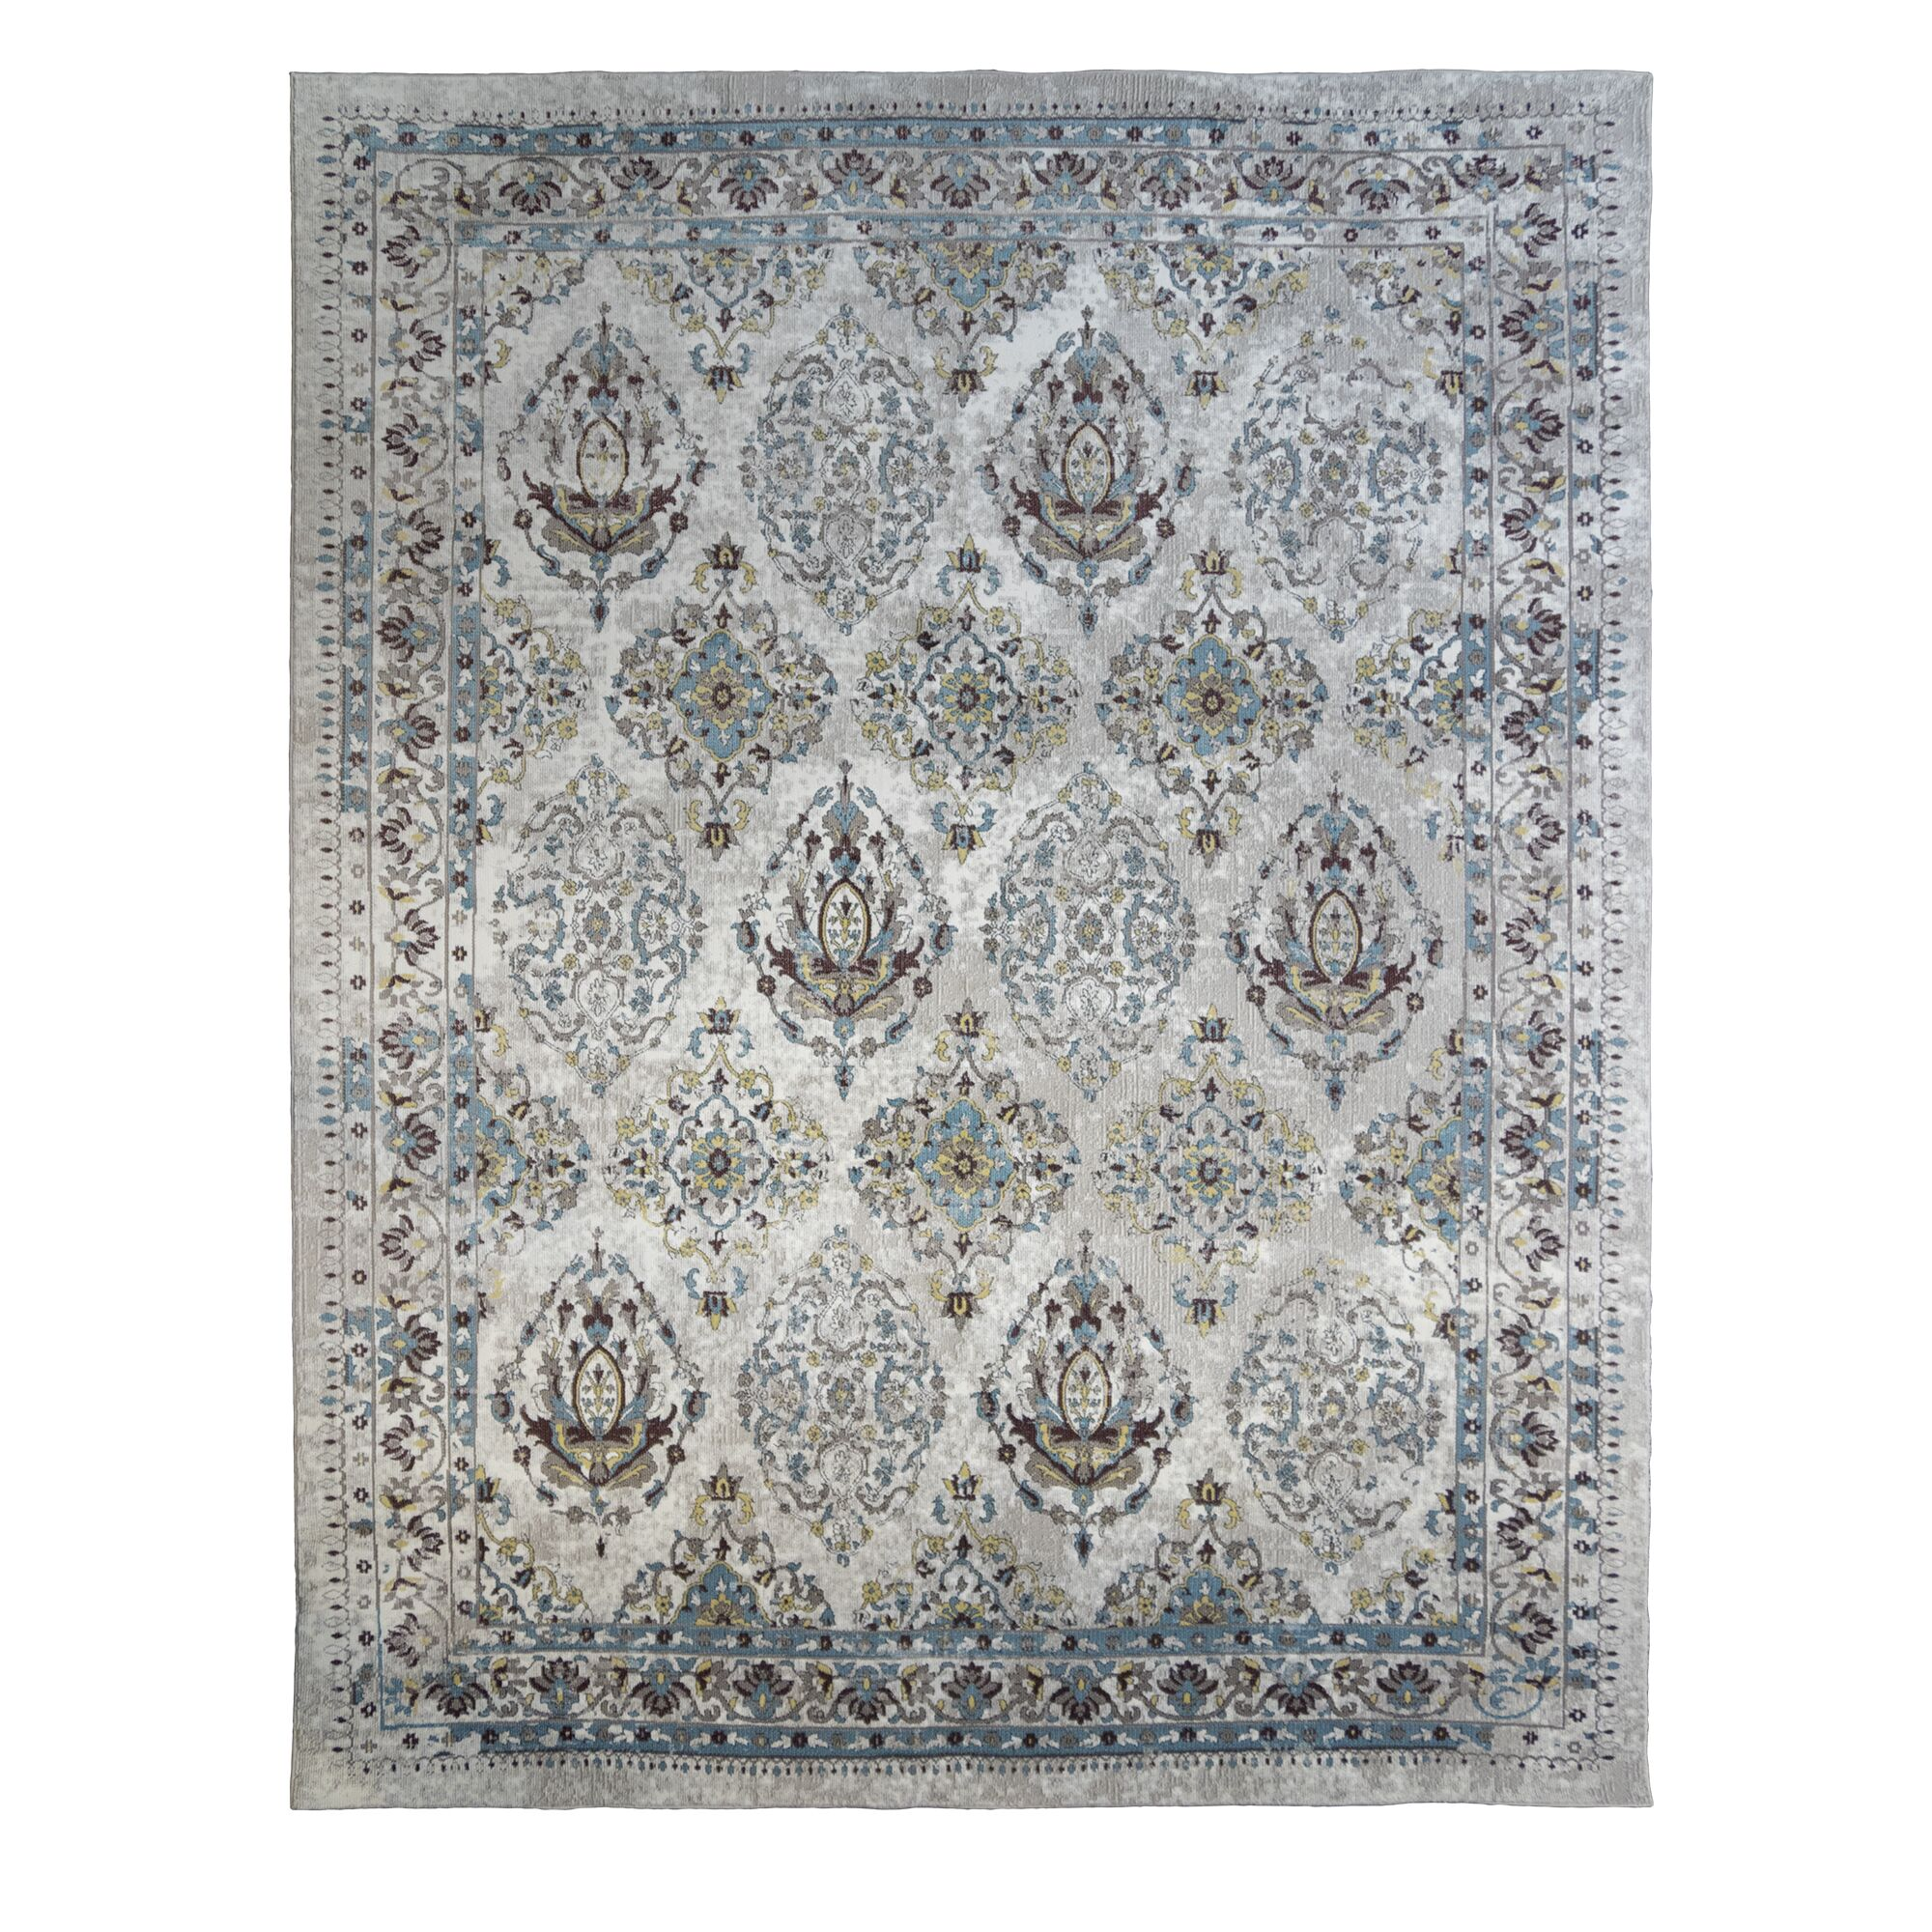 Rios Ivory Area Rug Rug Size: Rectangle 6'6